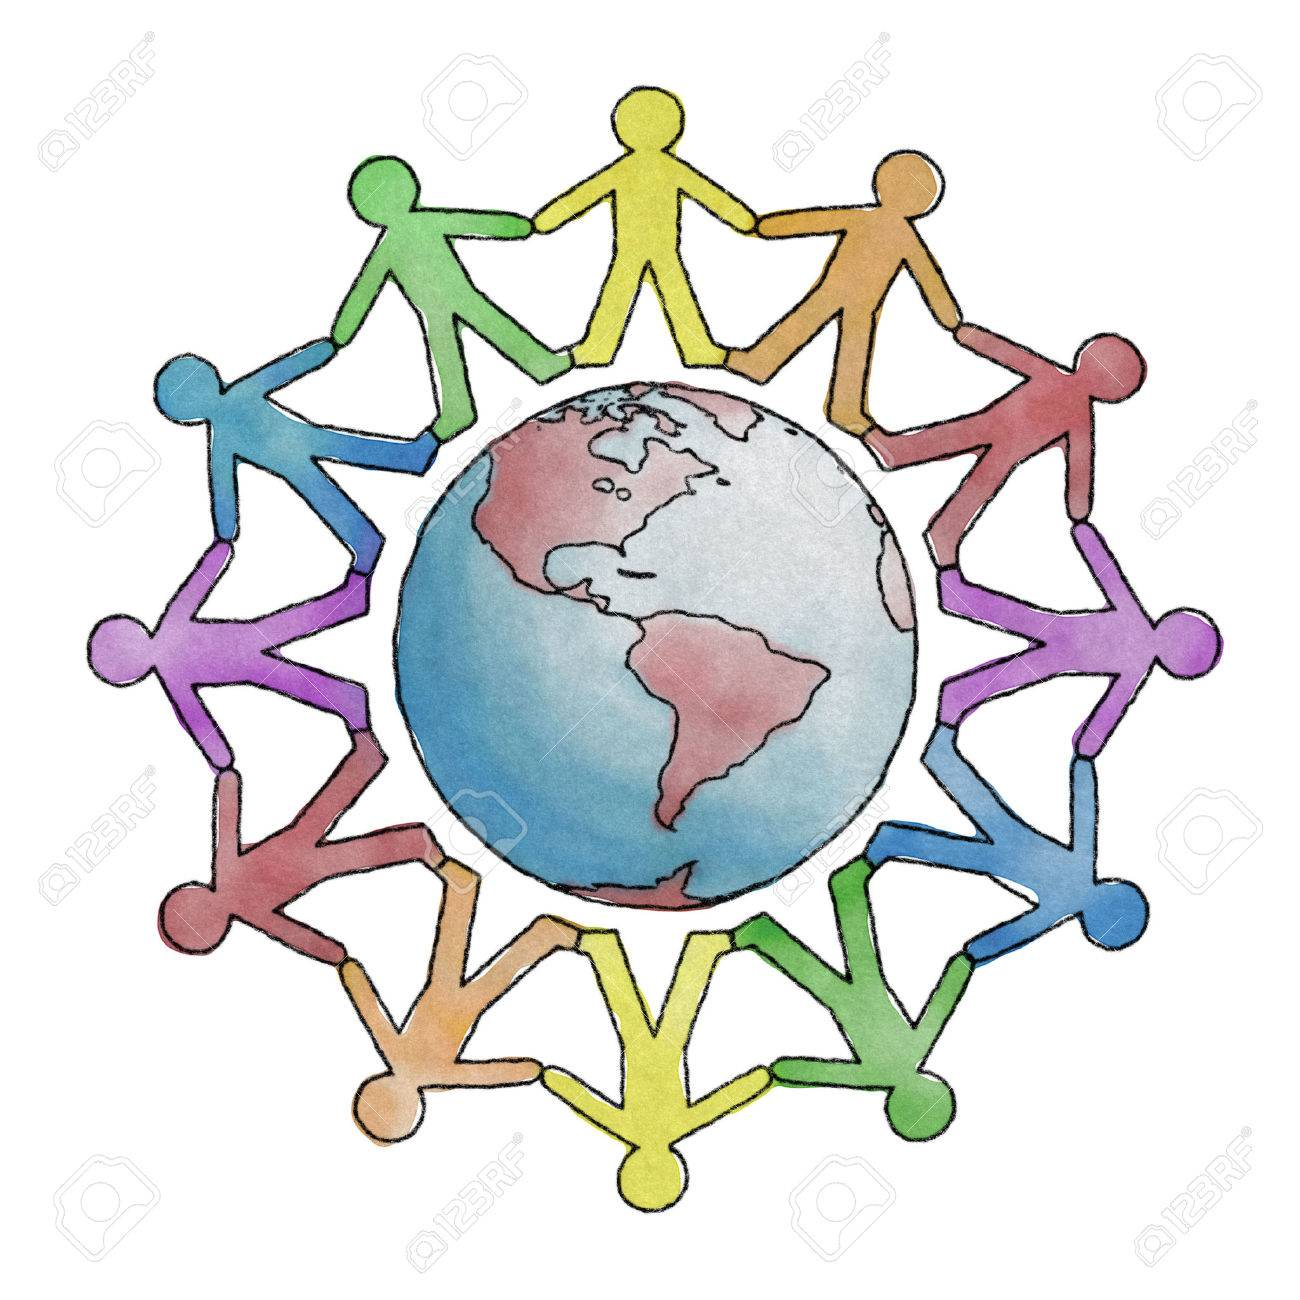 Hand drawn Earth with cutout people holding hands - 30657072